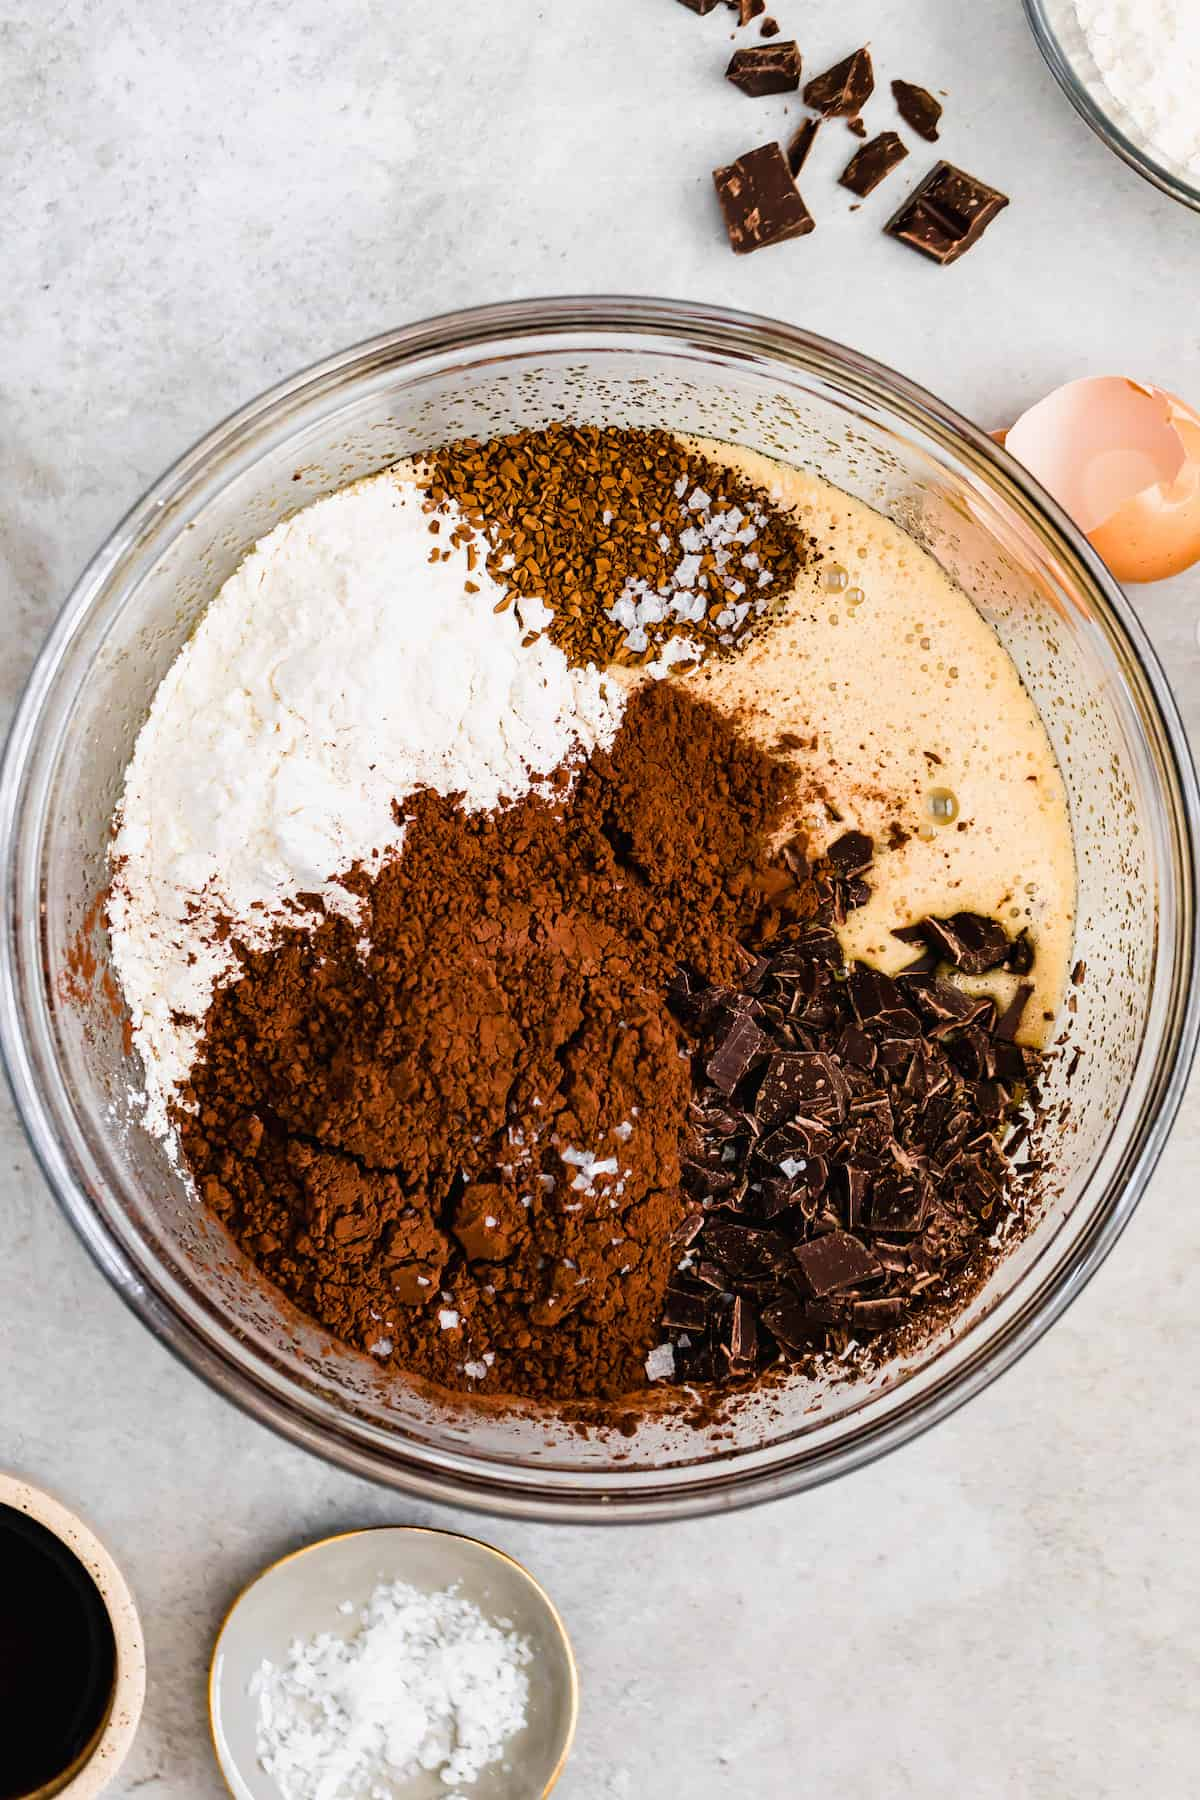 A Glass Bowl of Brownie Batter with the Chocolate and Dry Ingredients Added, But Not Mixed In